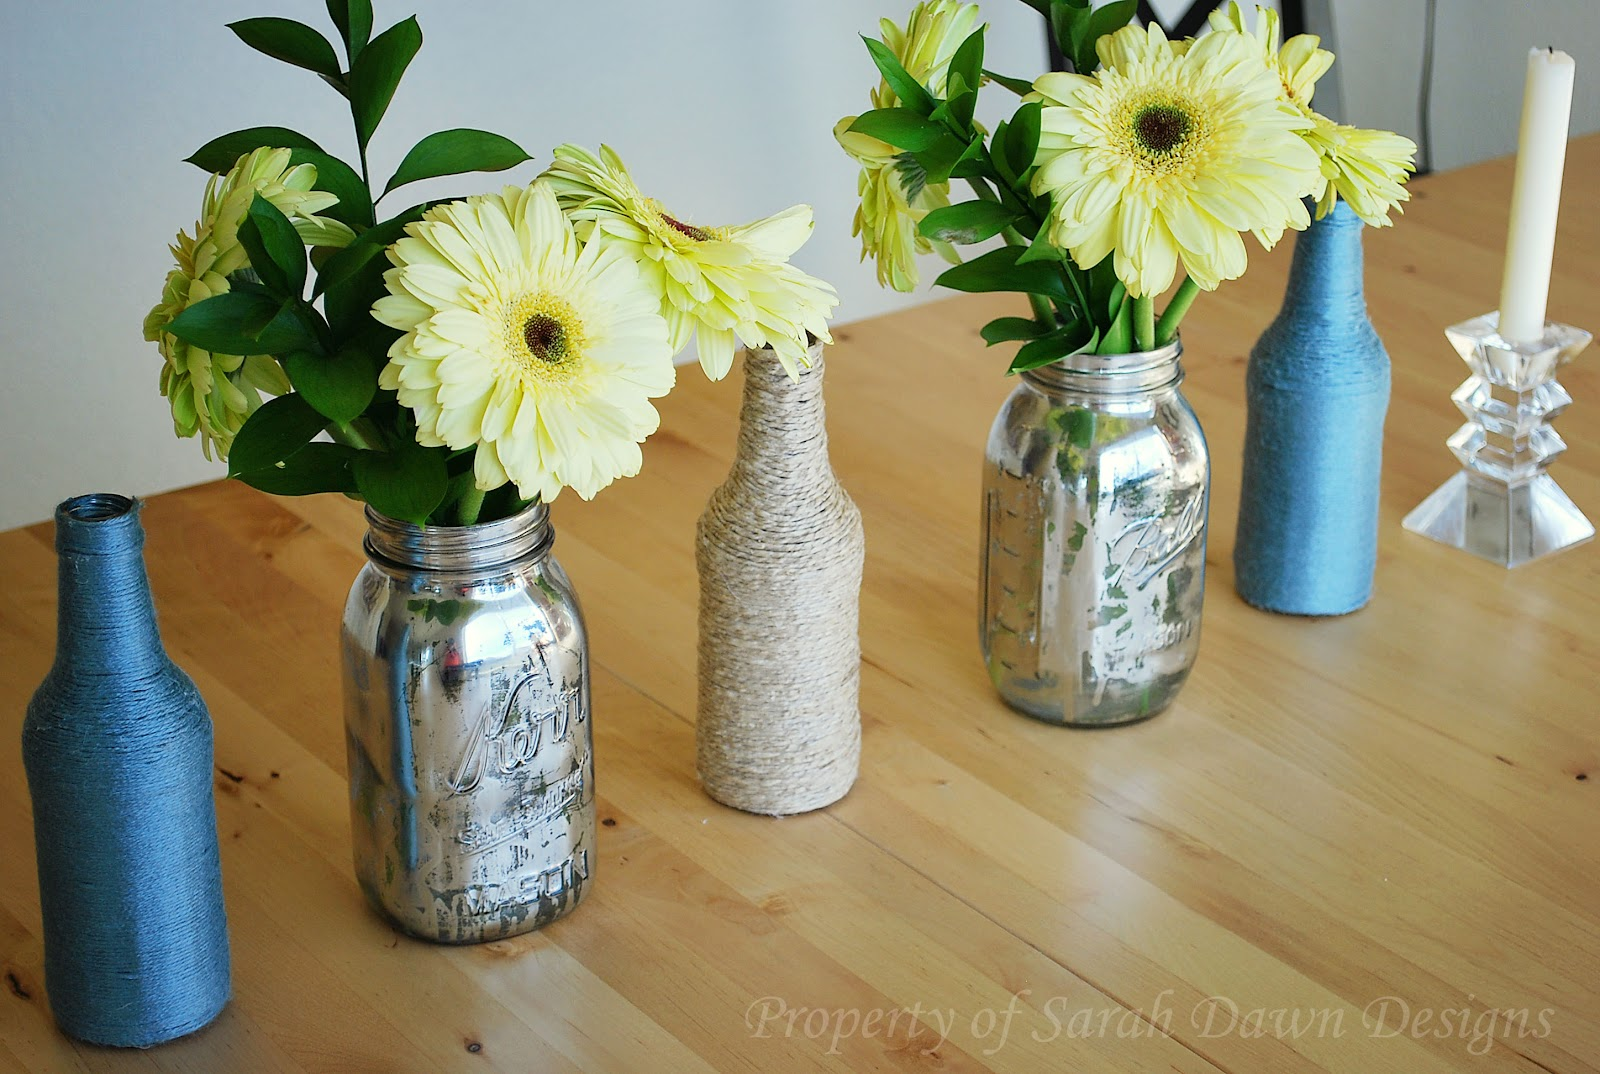 Sarah dawn designs upcycling ideas for the home dining for 4 h decoration ideas